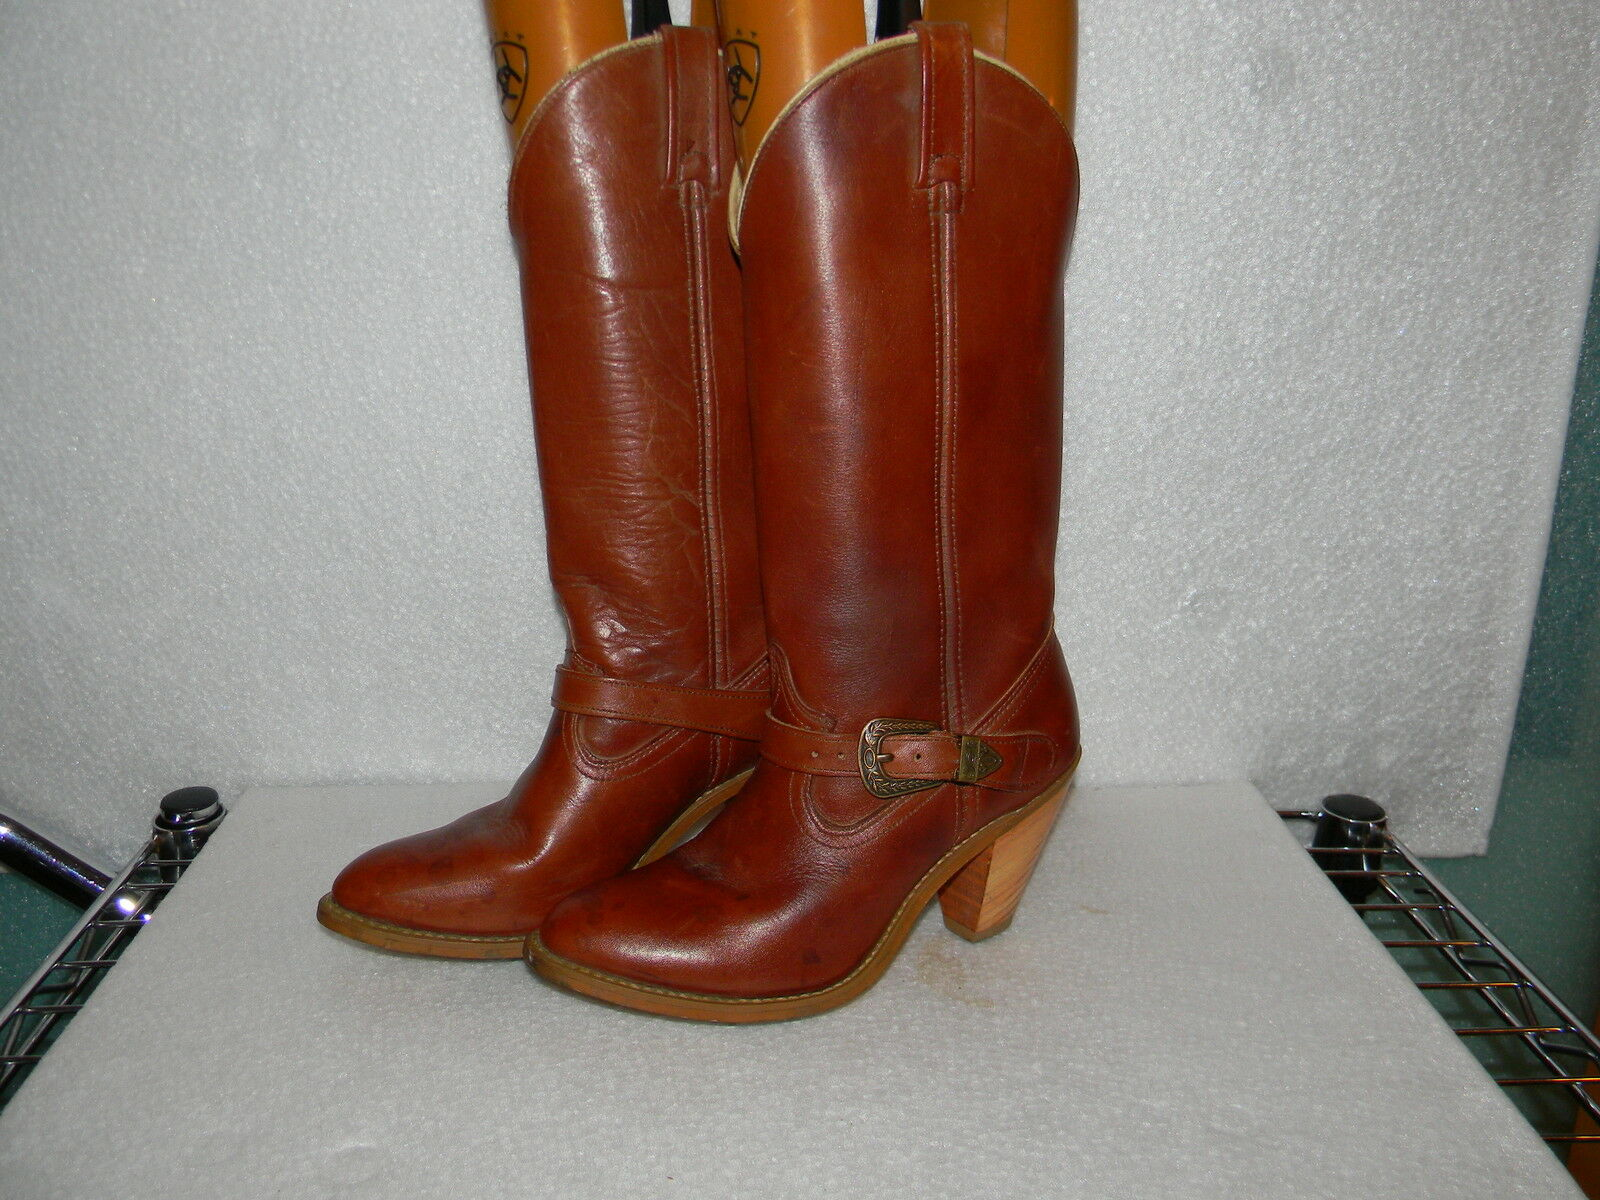 VINTAGE ACME BOOTS 6.5 WESTERN BOOTS 6.5 M COWBOY BOOTS 6.5 LEATHER BOOTS 6.5